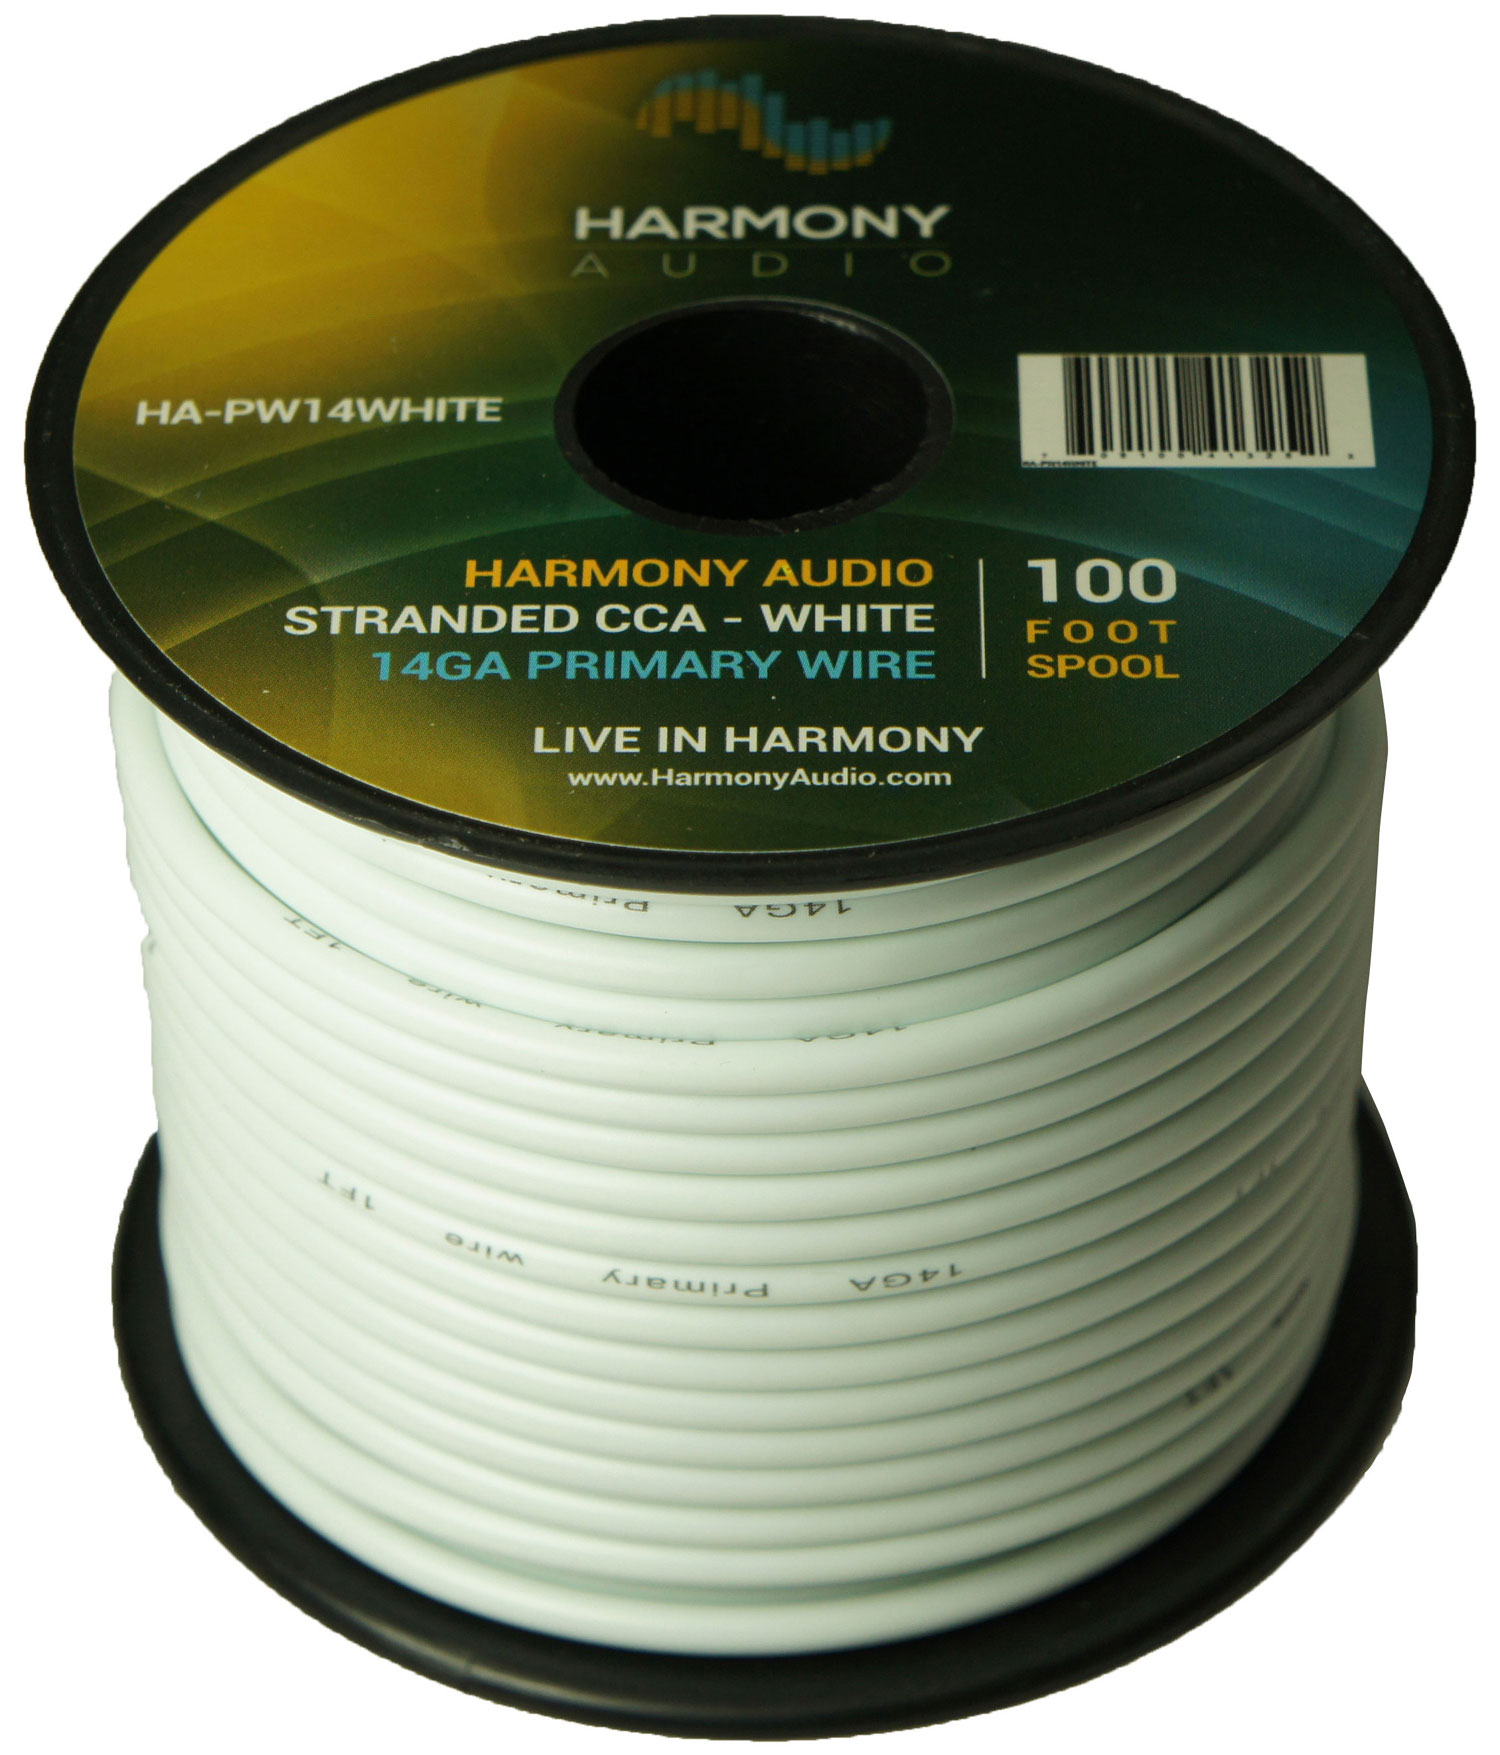 Harmony Audio HA-PW14WHITE Primary Single Conductor 14 Gauge White Power or Ground Wire Roll 100 Feet Cable for Car Audio / Trailer / Model Train / Remote